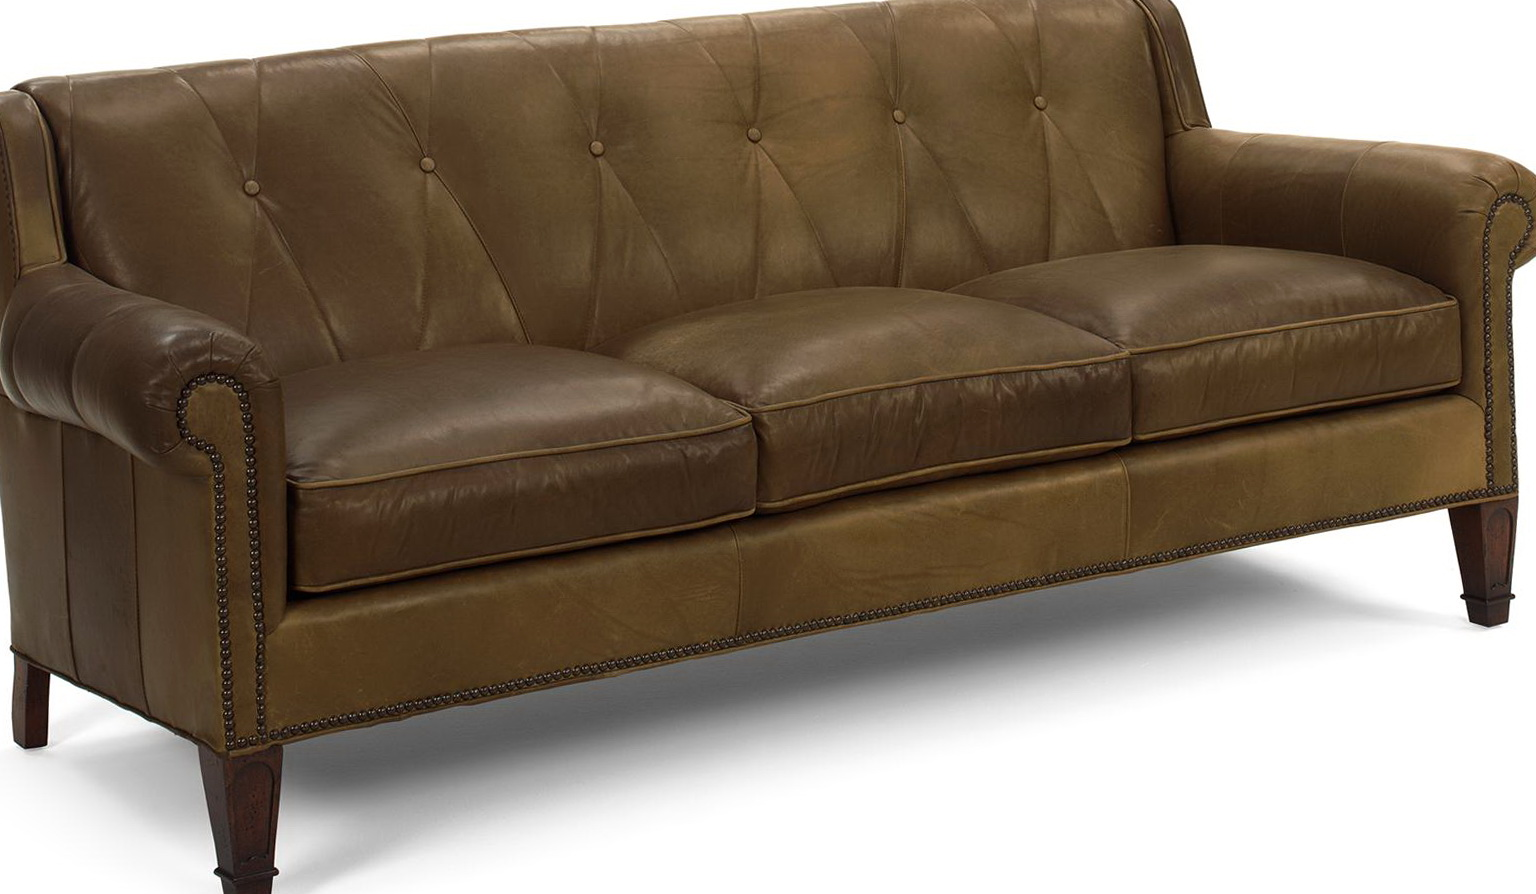 Top Grain Leather Sofa Care